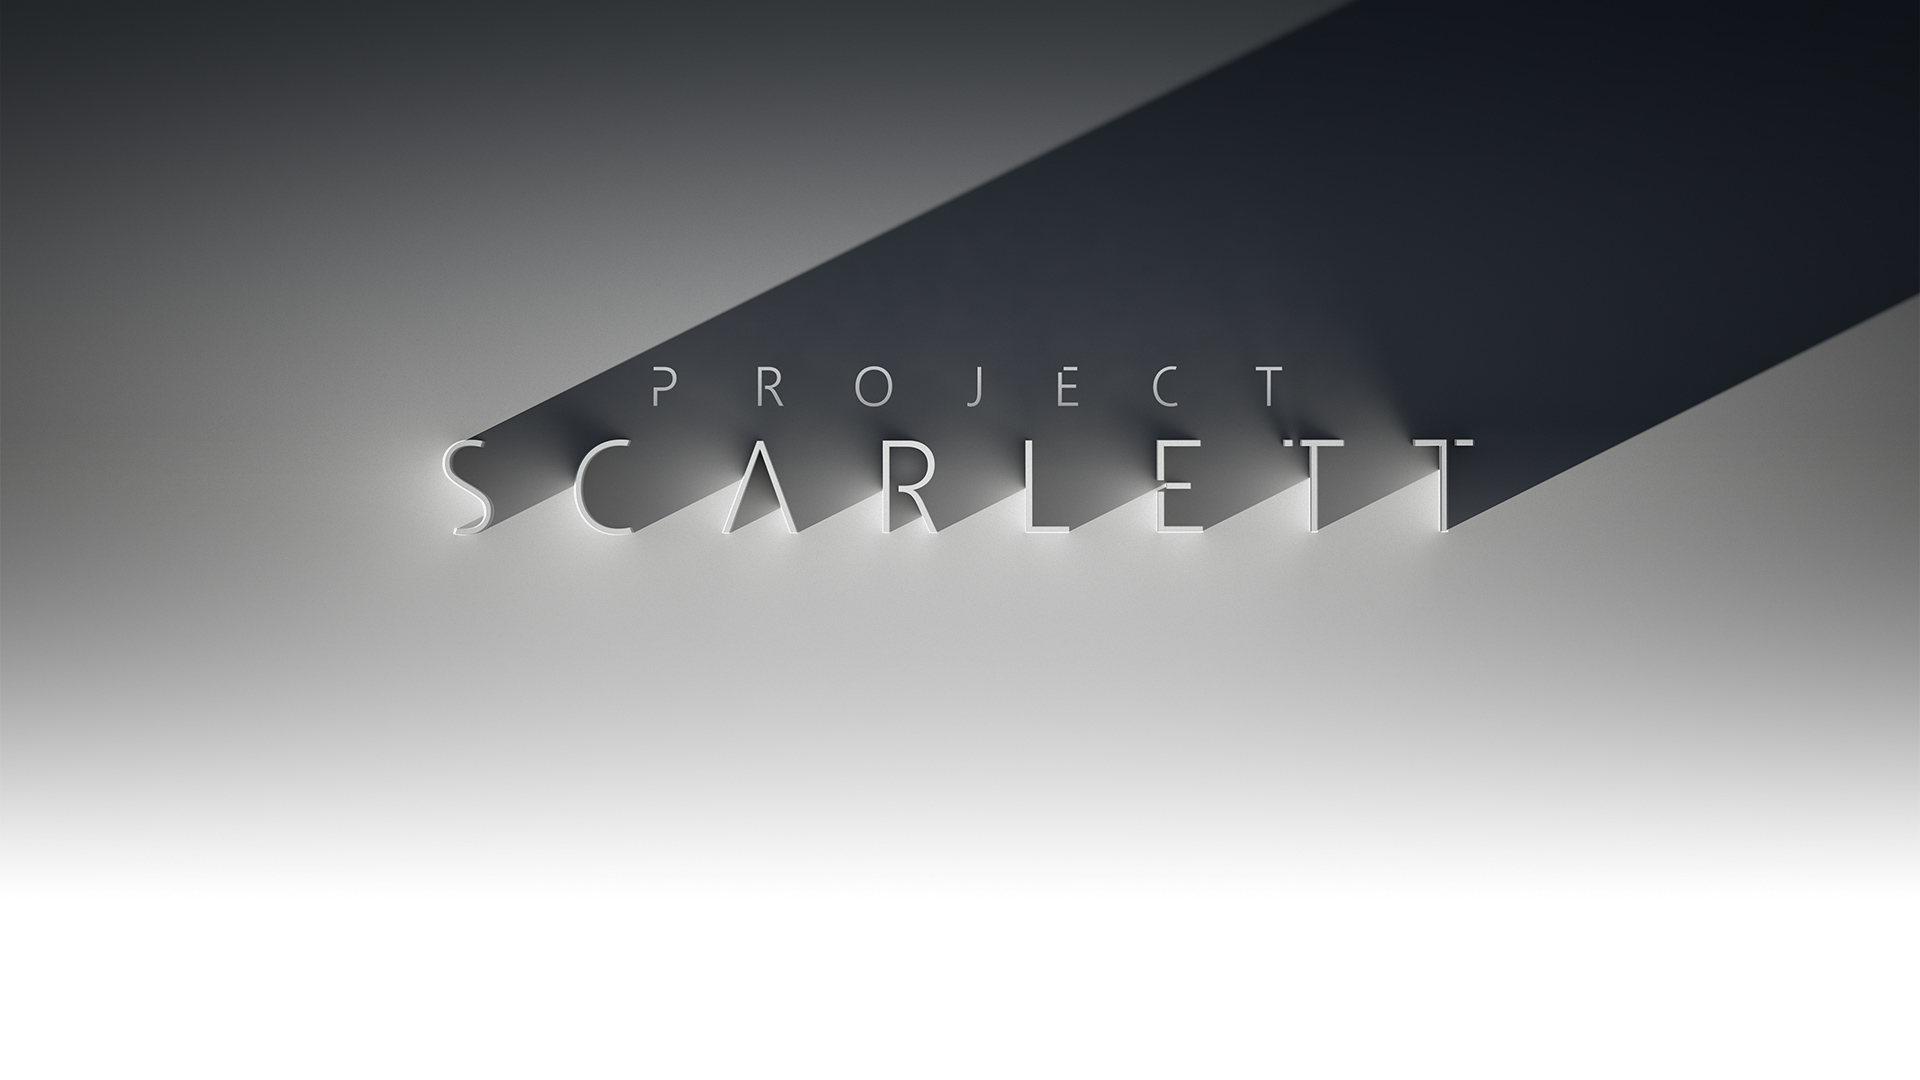 Project Scarlett, stylized three dimensional lettering cast in shadow